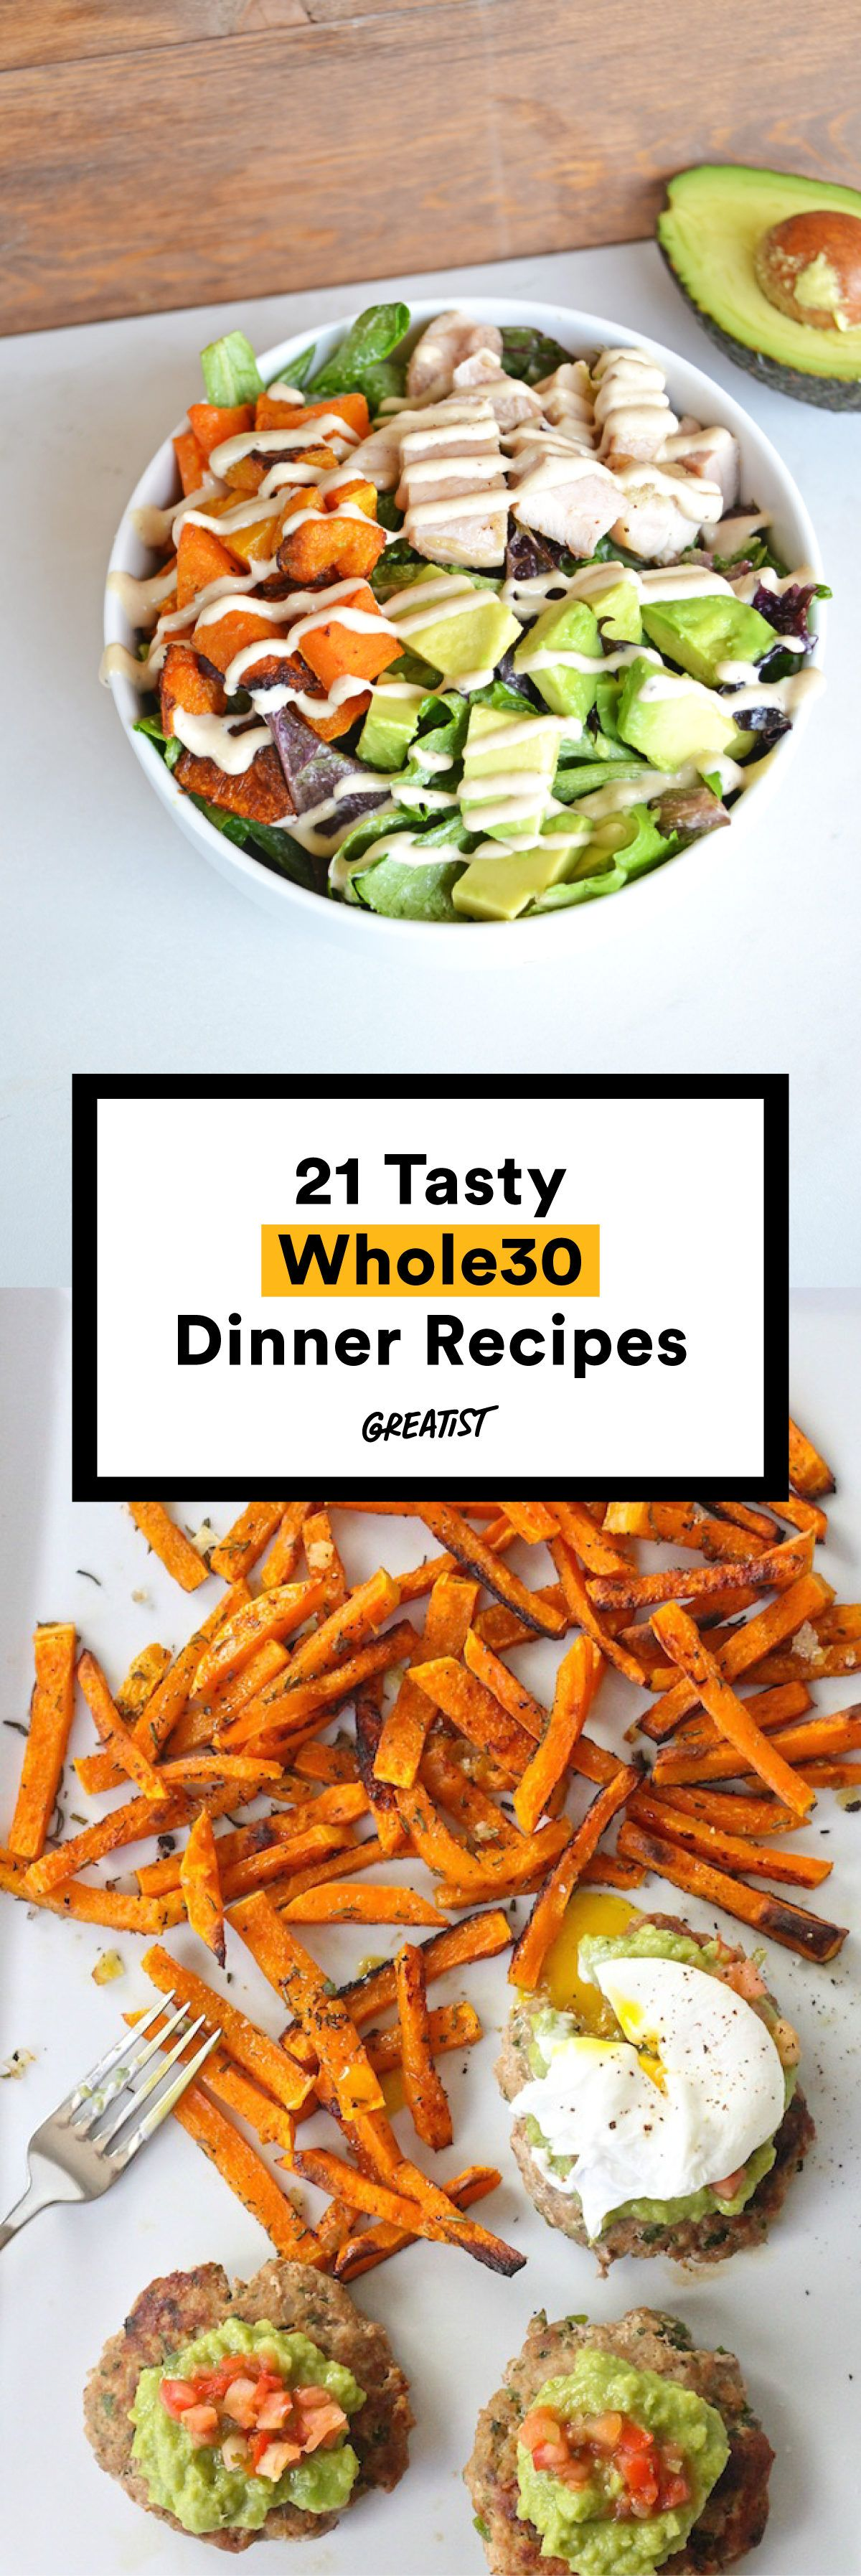 21 easy and delicious whole30 dinner recipes ensaladas recetas 21 easy and delicious whole30 dinner recipes forumfinder Gallery